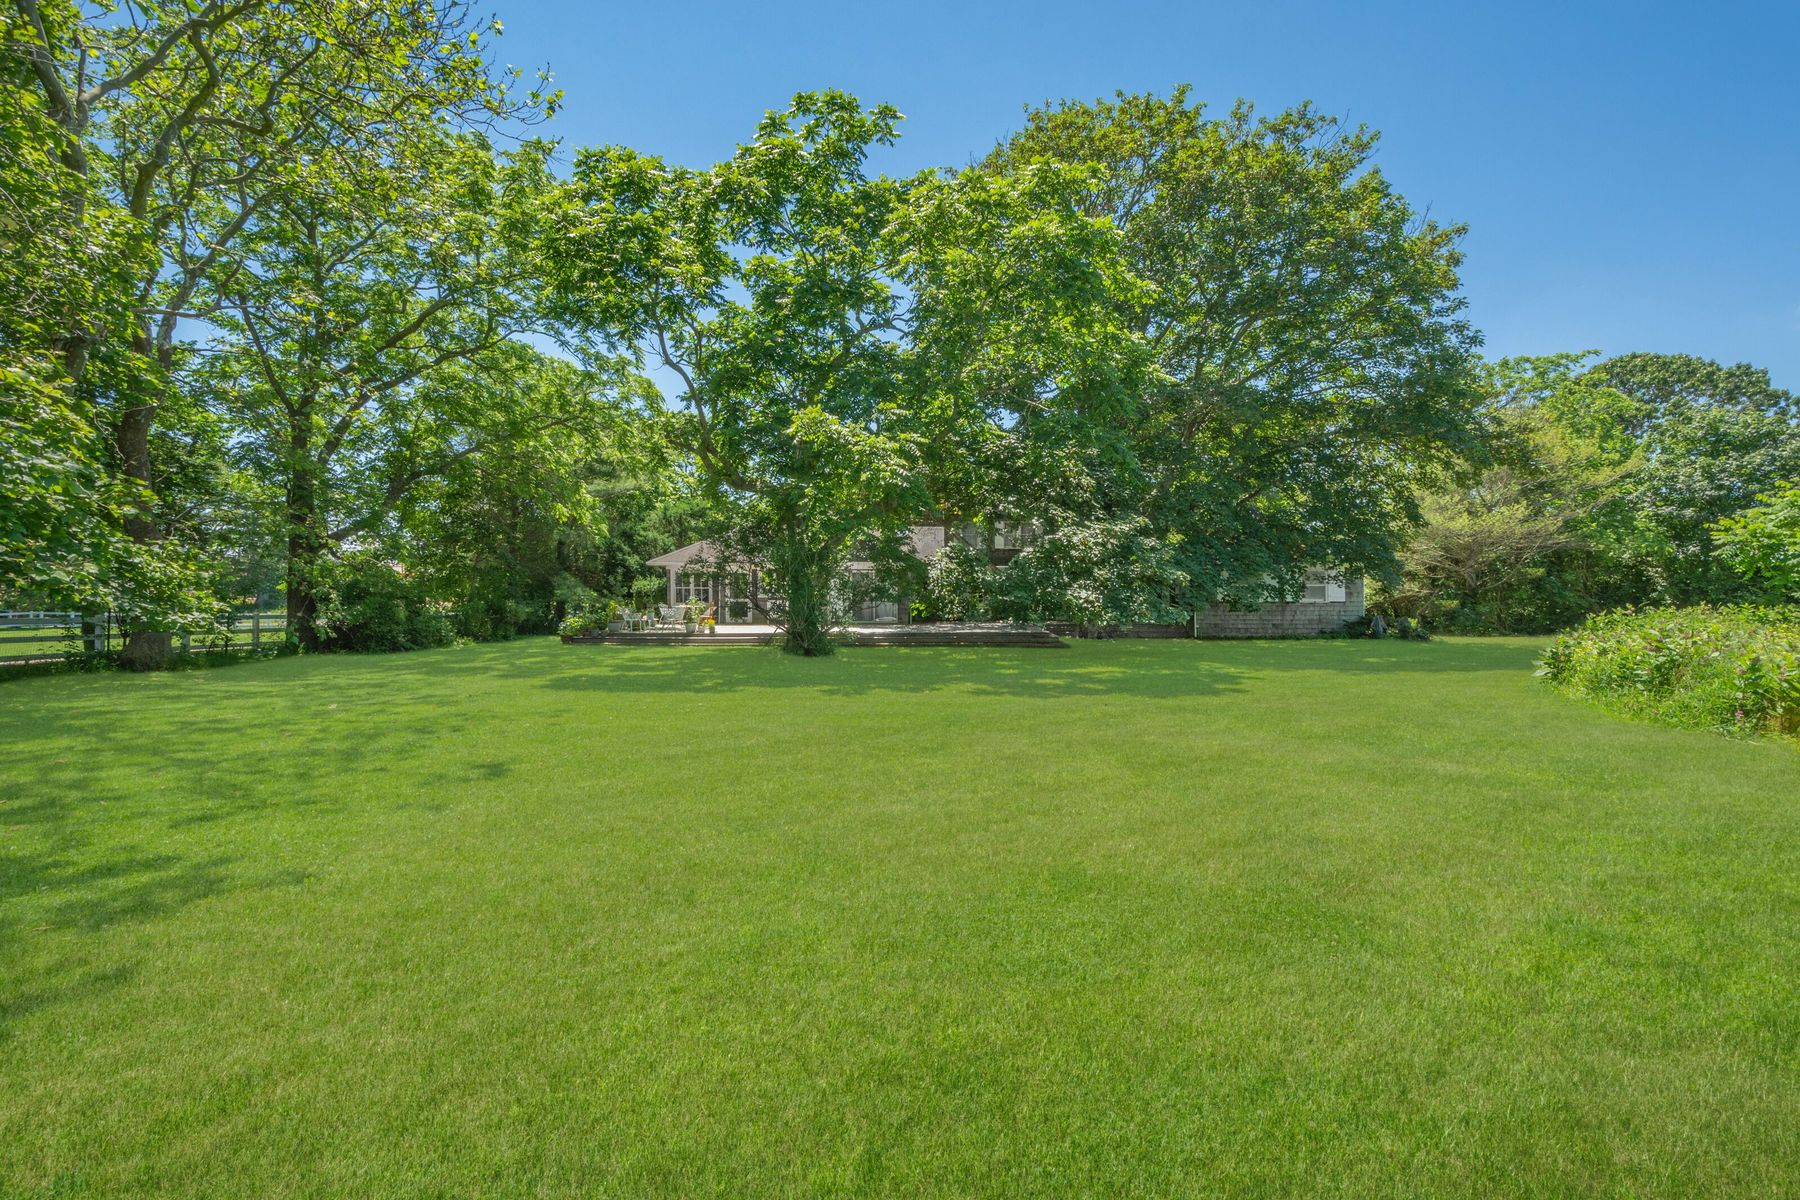 Single Family Homes for Active at SOUTH OF HIGHWAY OVERLOOKING FARM 11 Town Line Road Wainscott, New York 11975 United States